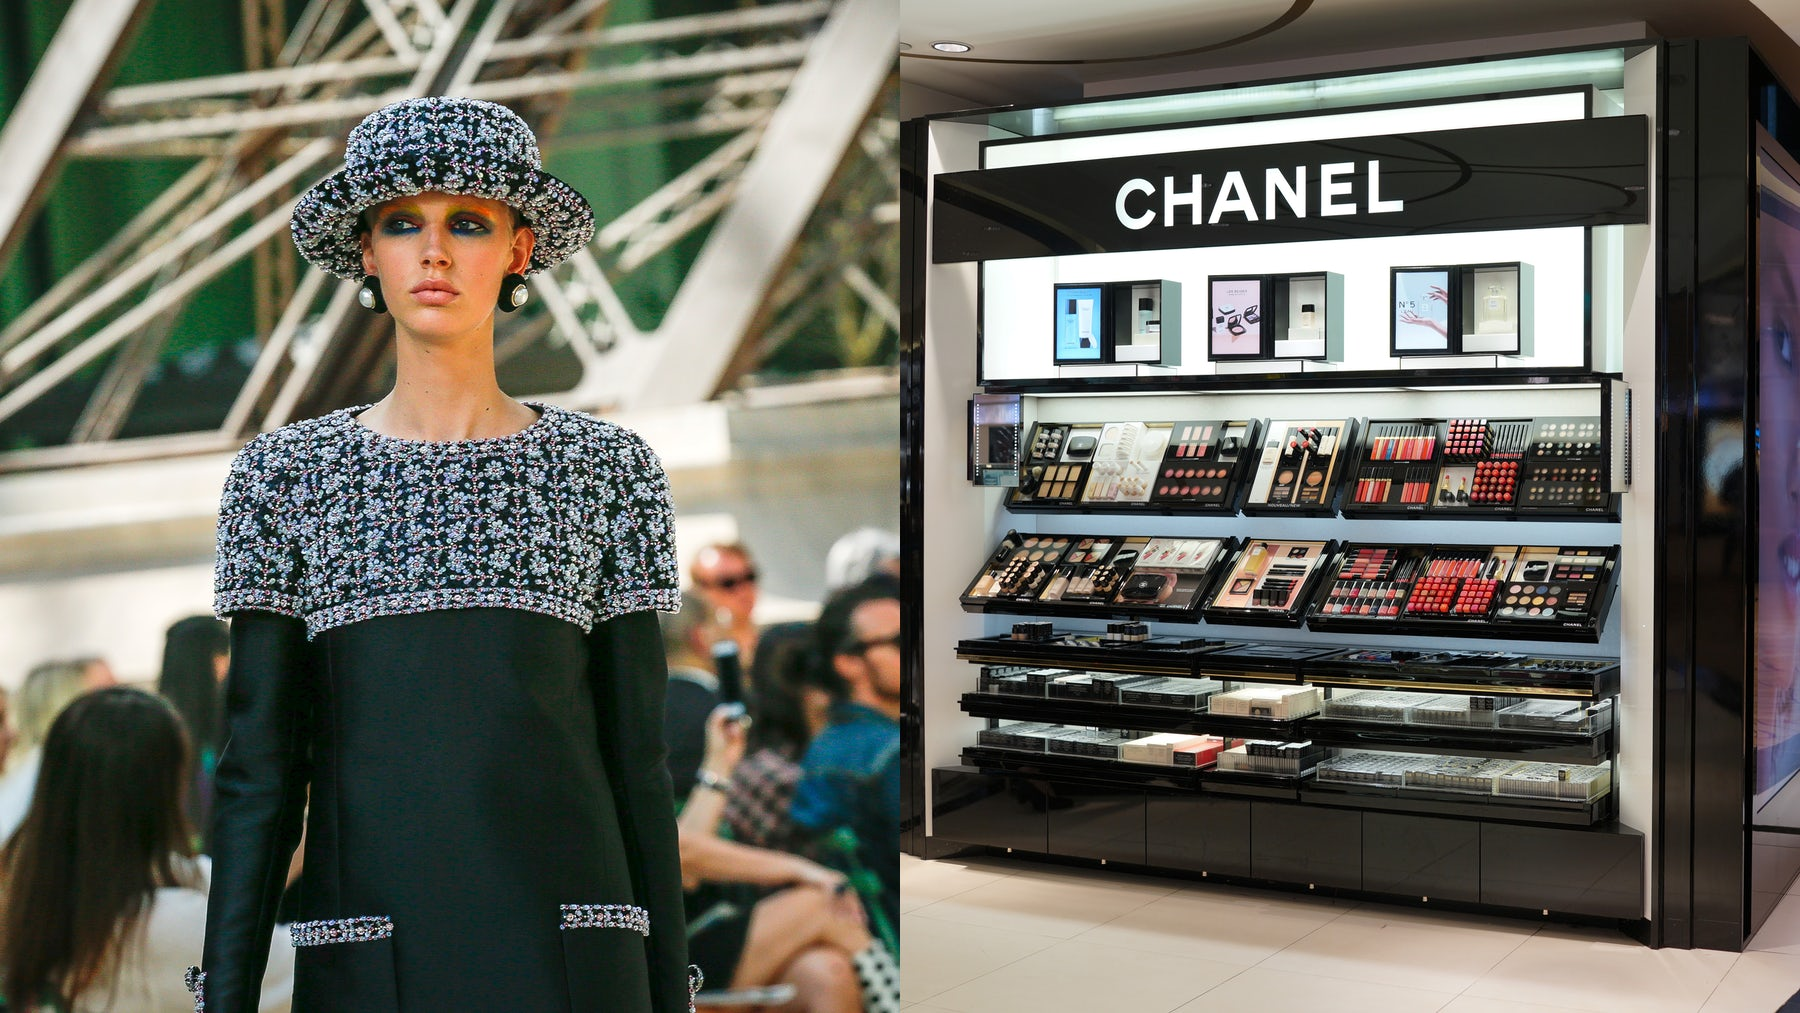 Chanel Autumn/Winter 2017 haute couture show, Chanel beauty counter | Sources: InDigital, Shutterstock